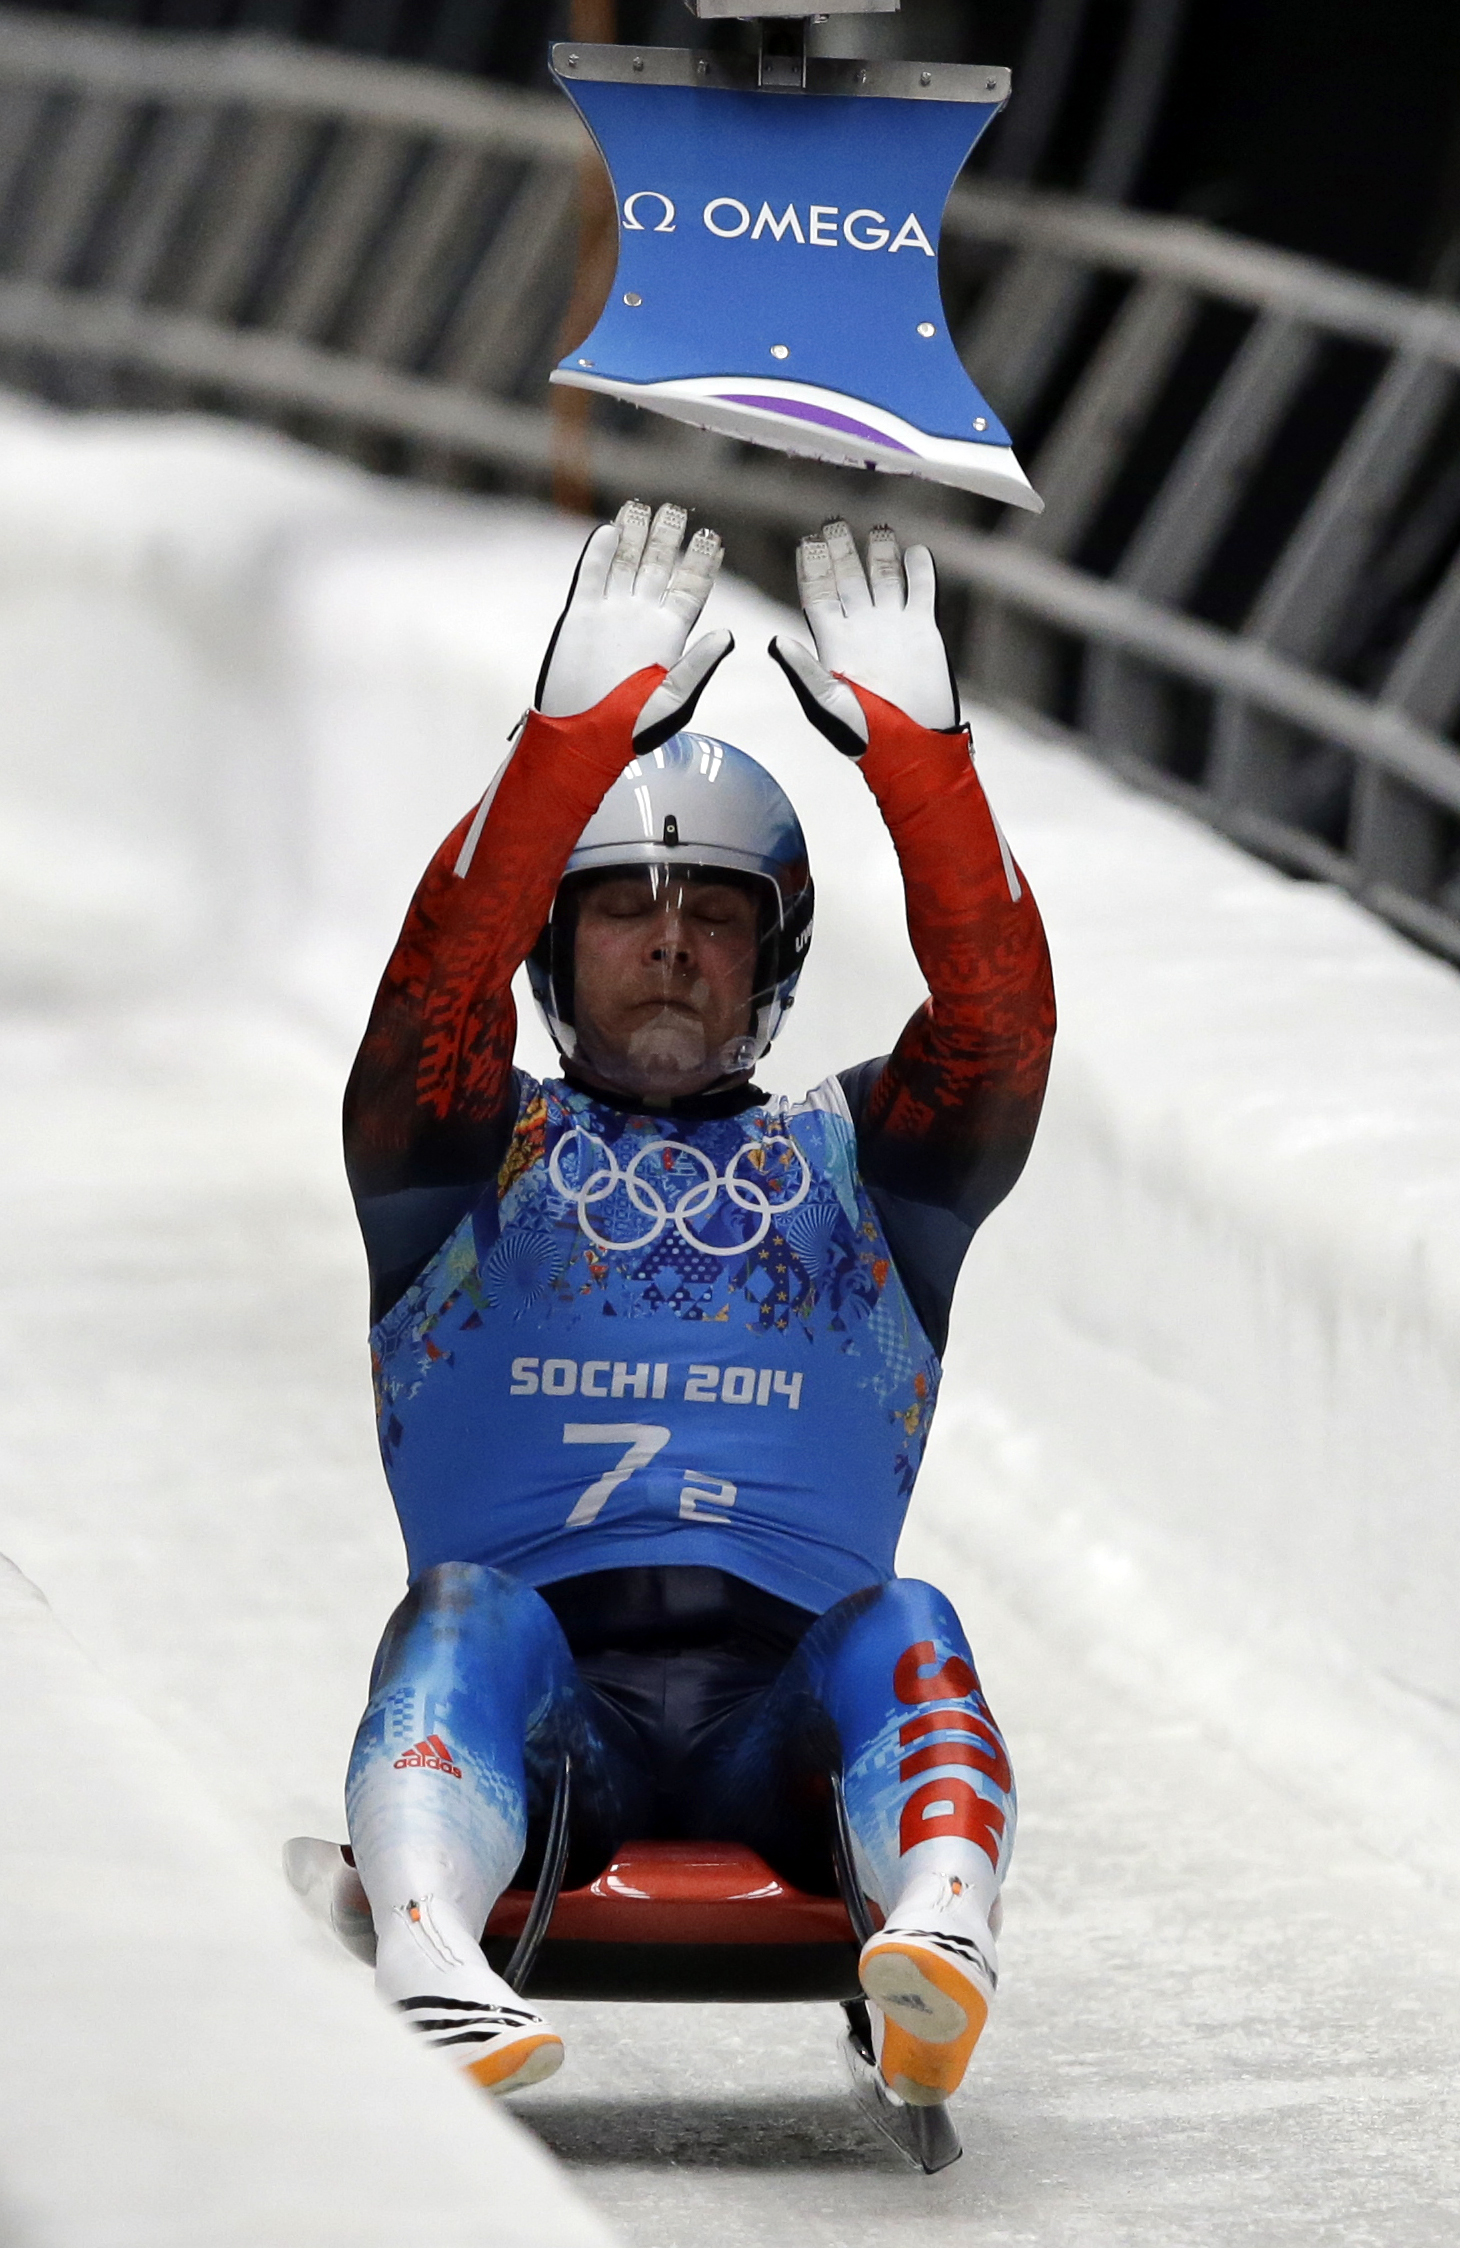 Russia's Albert Demchenko hits the relay pad so the doubles team can start their run during the luge team relay competition at the 2014 Winter Olympics, Thursday, Feb. 13, 2014, in Krasnaya Polyana, Russia. Russia won the silver medal. (AP Photo/Dita Alangkara)